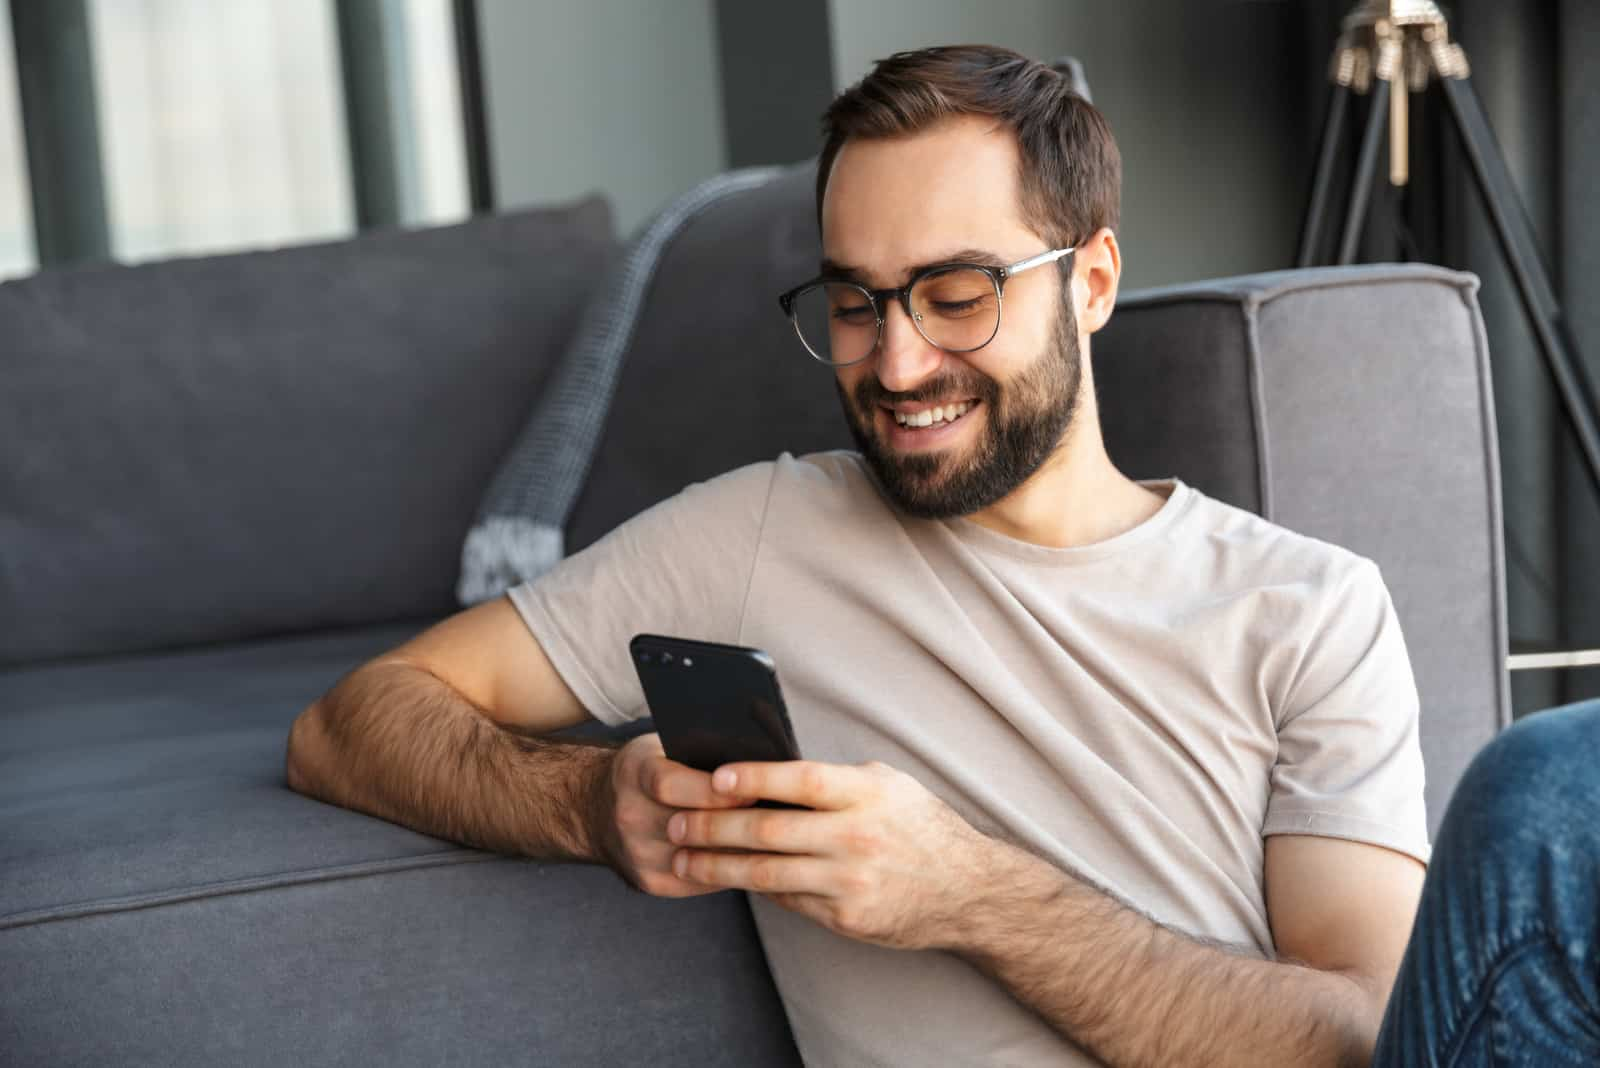 a smiling man sitting on the floor leaning on the couch button on the phone